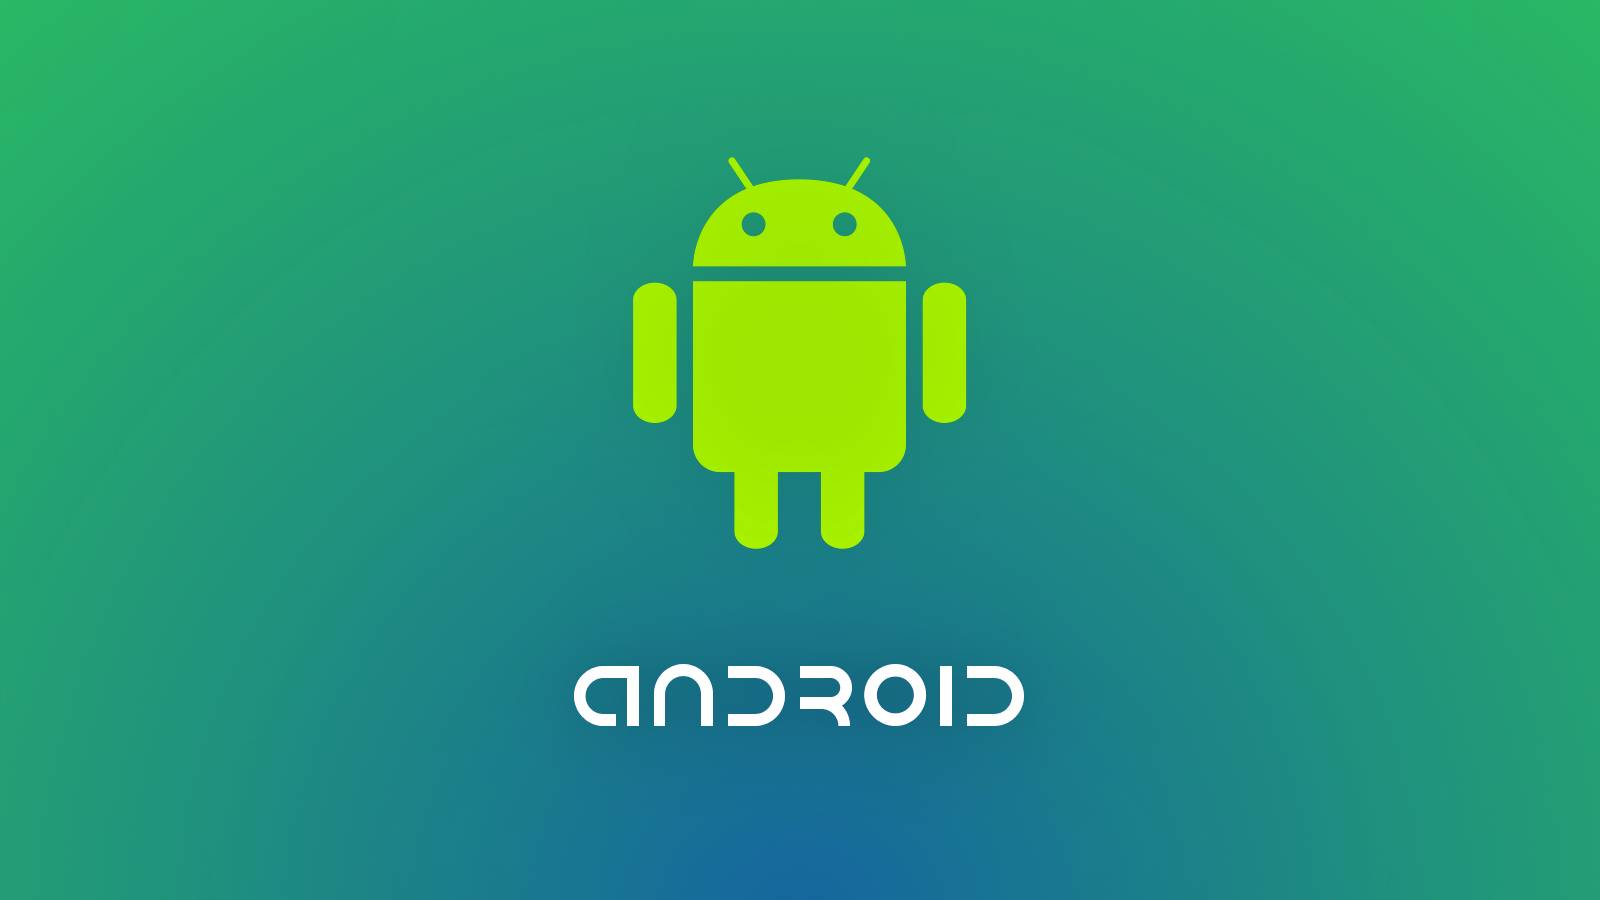 Android nepotrivire